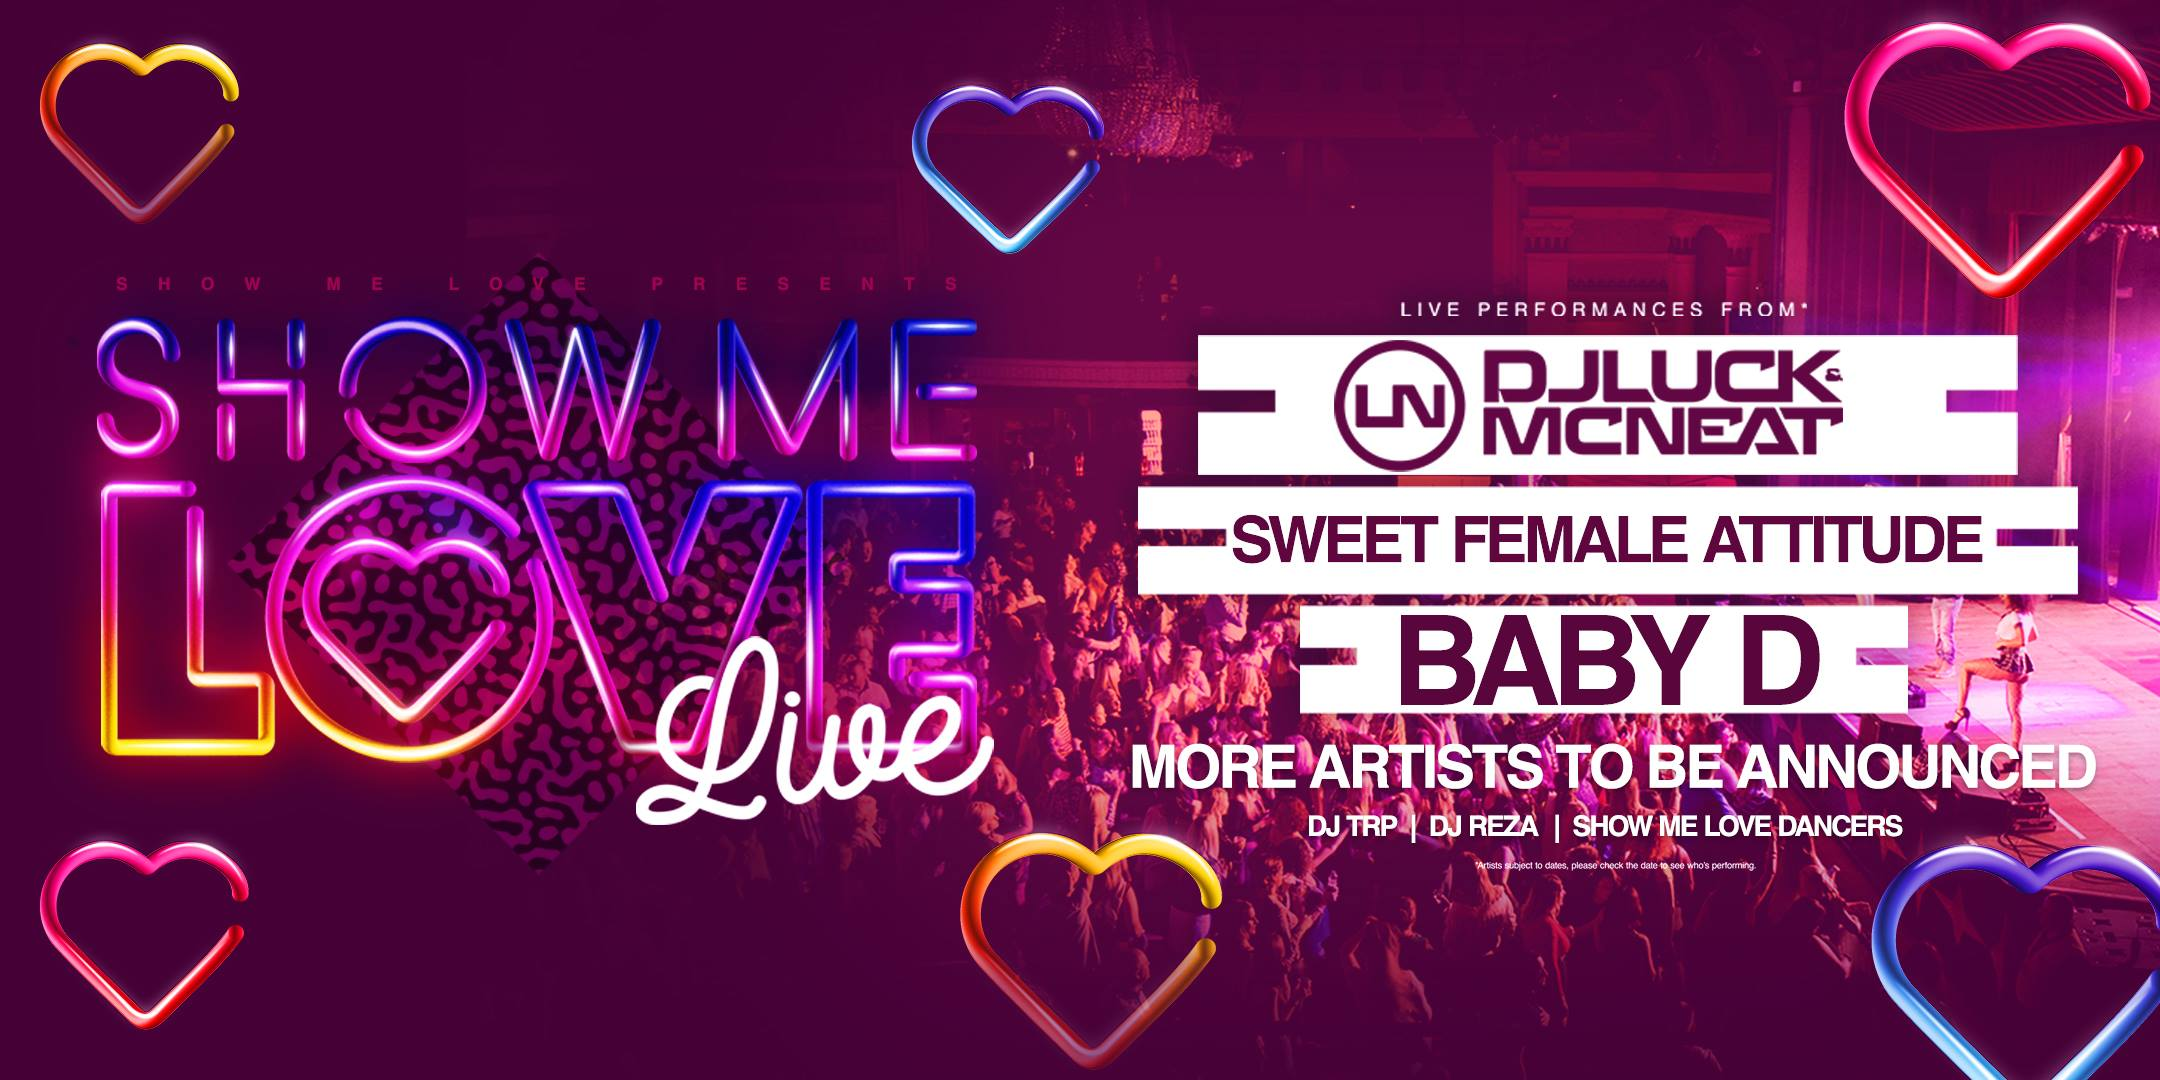 Brentwood Live - Show Me Love LIVE banner image